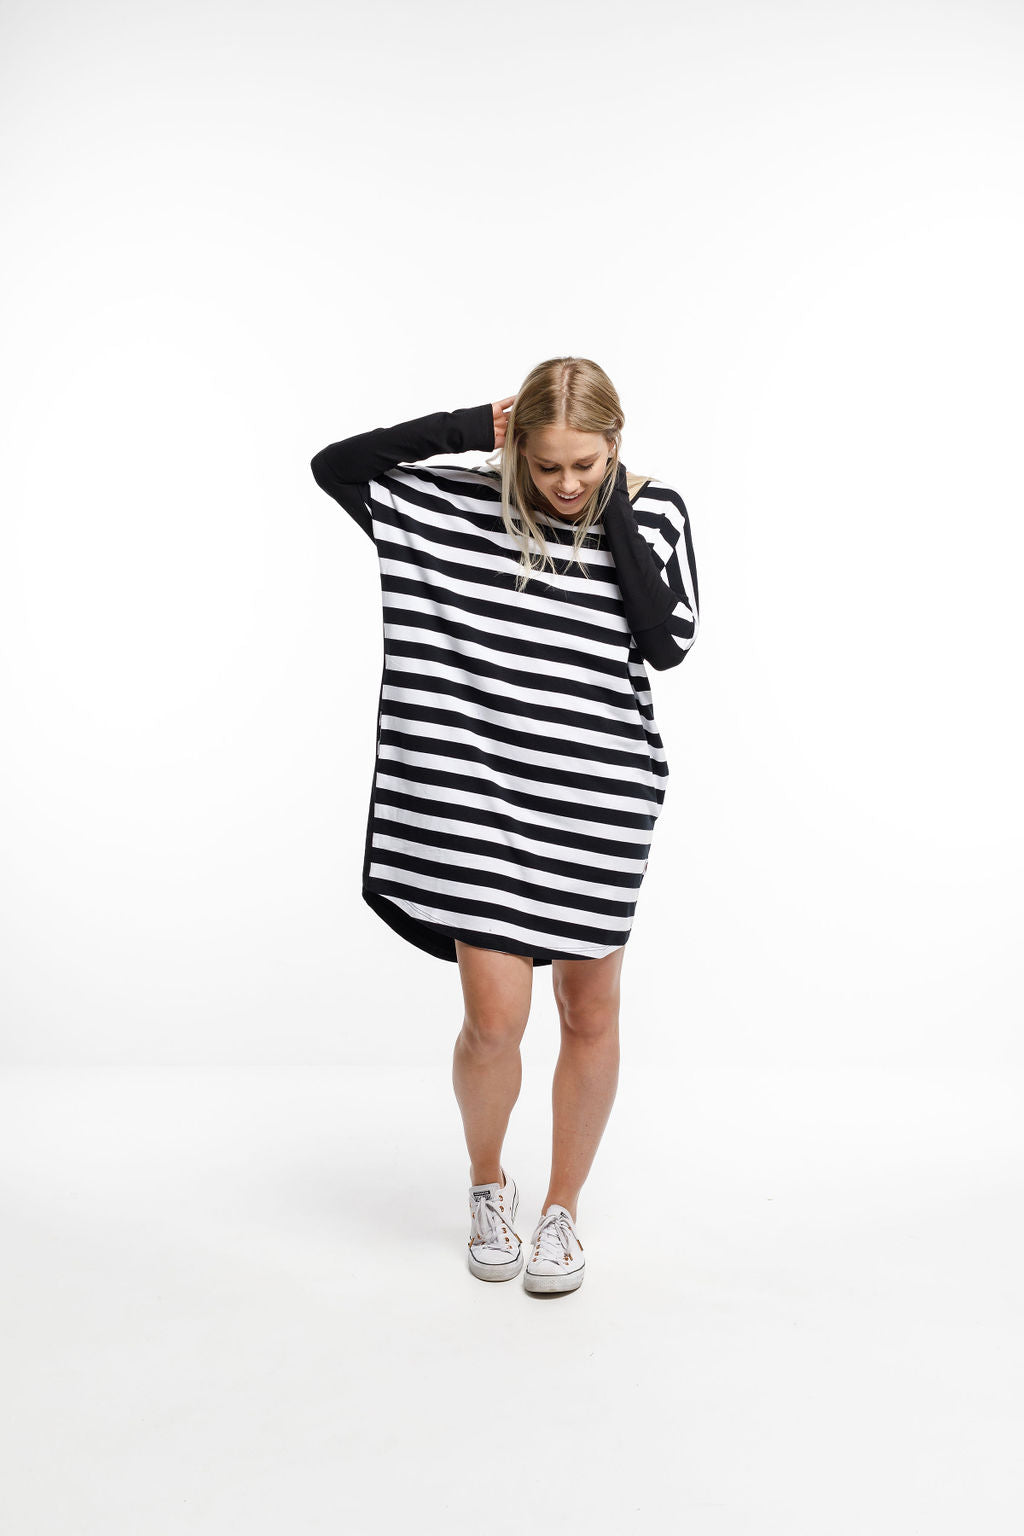 BATWING DRESS - Stripe front and Black back